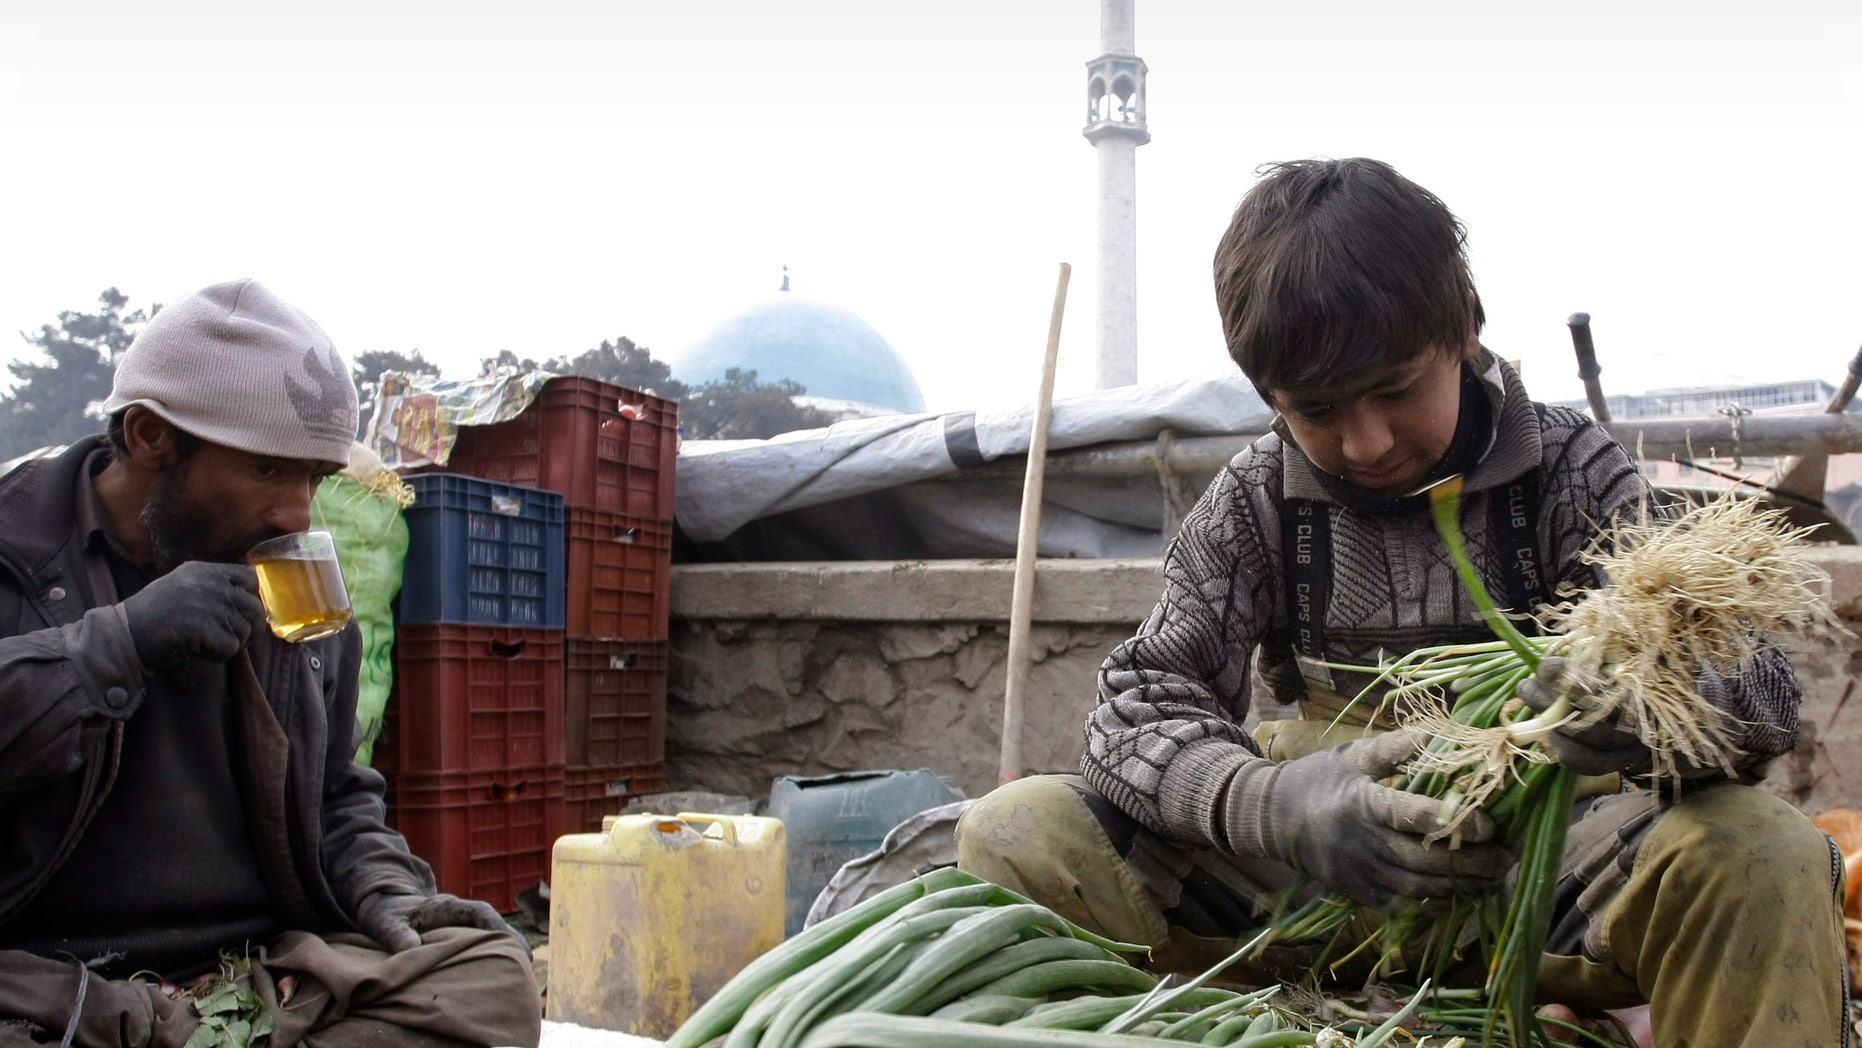 An Afghan vendor, right, sorts out vegetables as his father drinks tea during sorting of vegetable in Kabul, Afghanistan on Wednesday, Feb. 13, 2013. (AP Photo/Musadeq Sadeq)